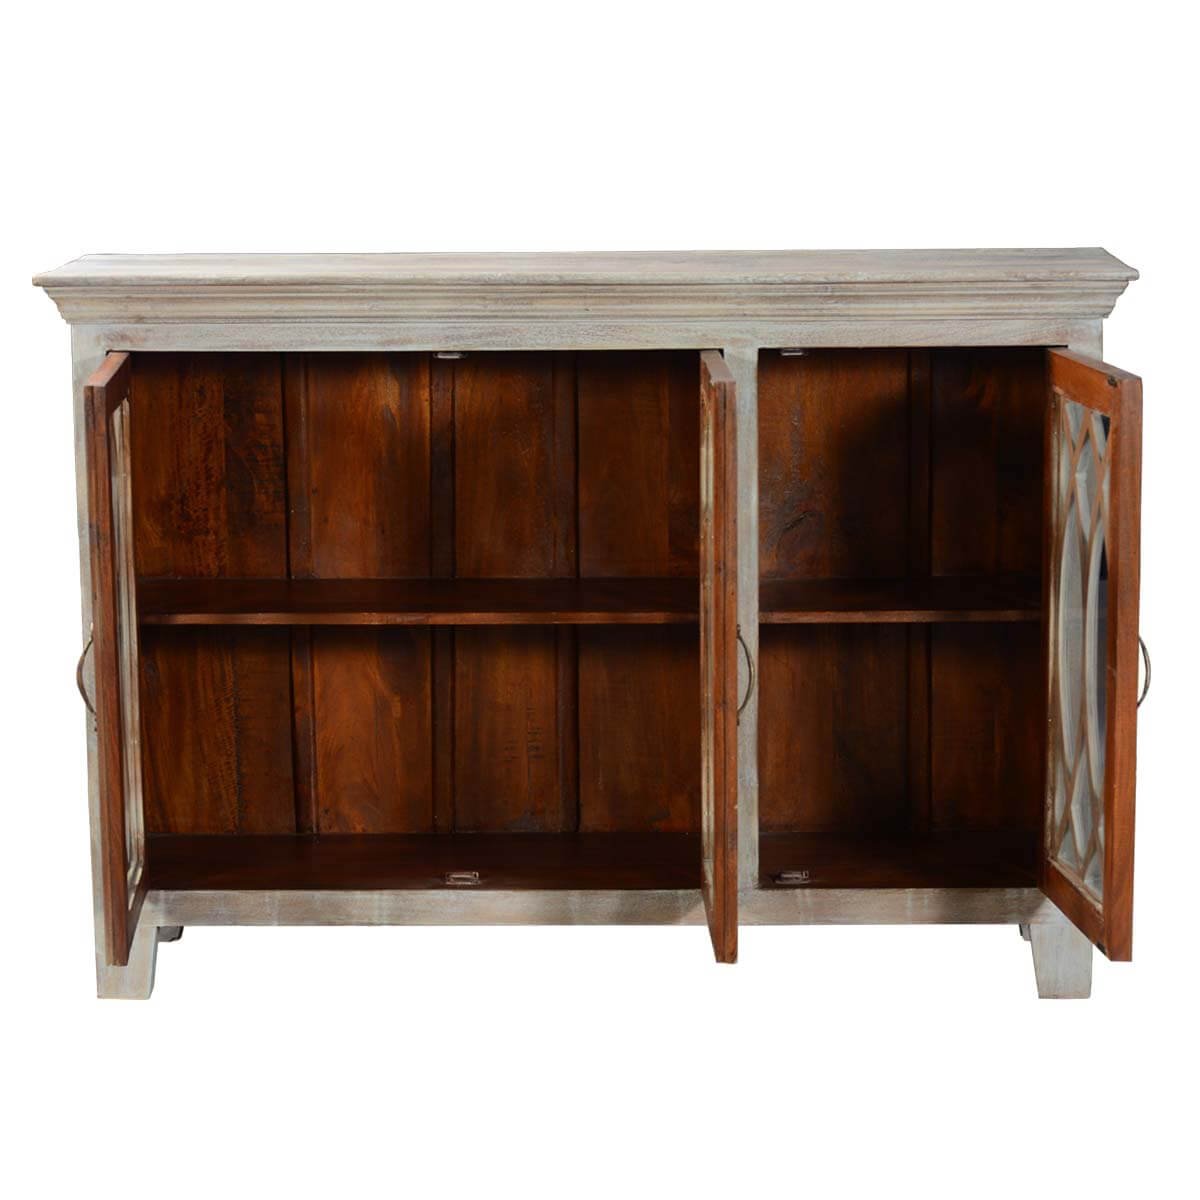 Solid Wood Rustic Buffet Palisade Glass Door Sideboard intended for Palisade Sideboards (Image 30 of 30)